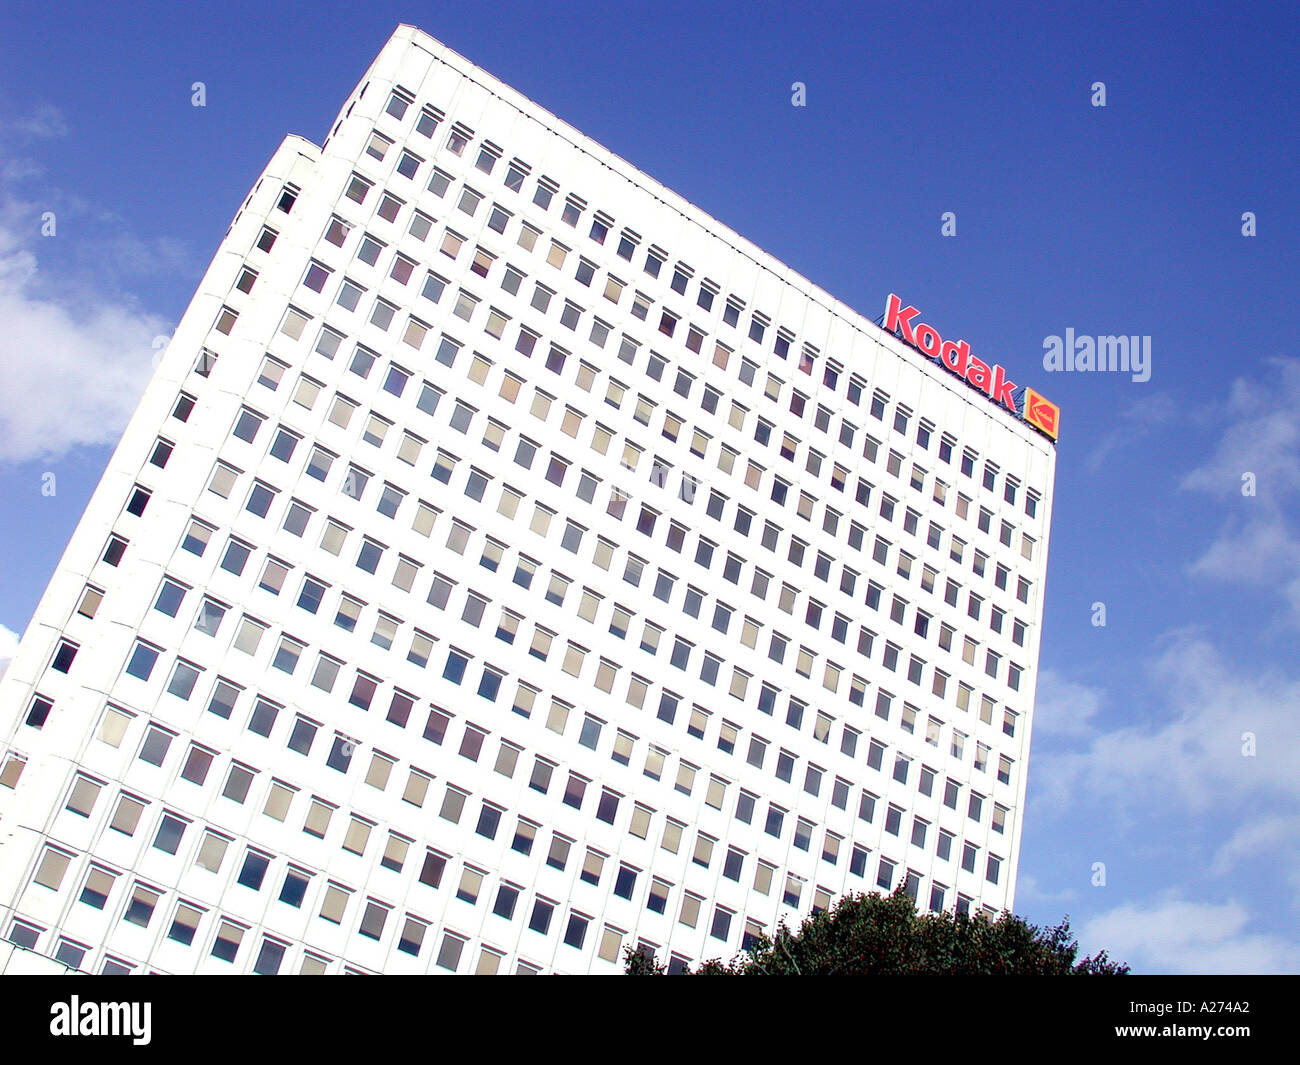 Kodak Ltd Head Office building, Hemel Hempstead, Hertfordshire, England, UK. - Stock Image